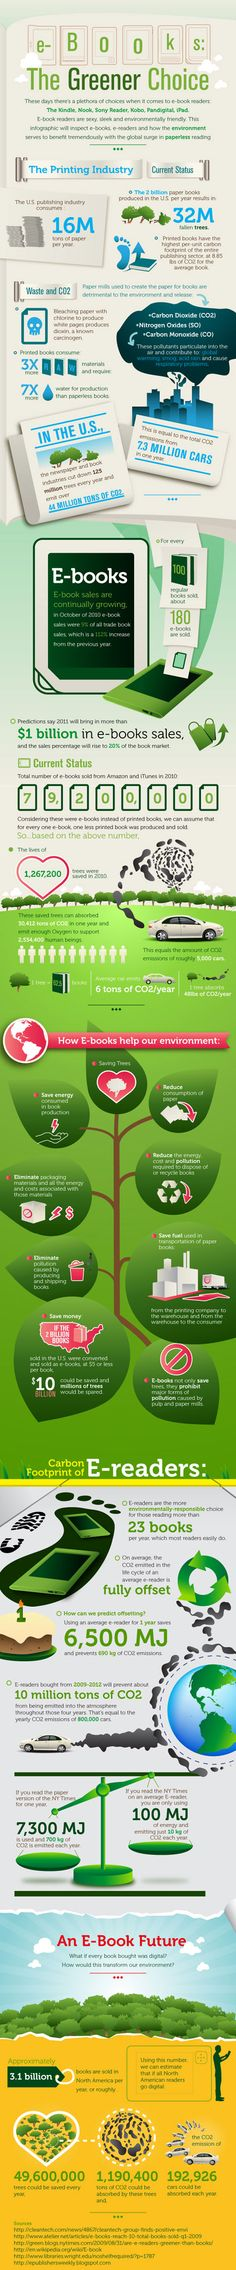 e-Books:  the greener choice